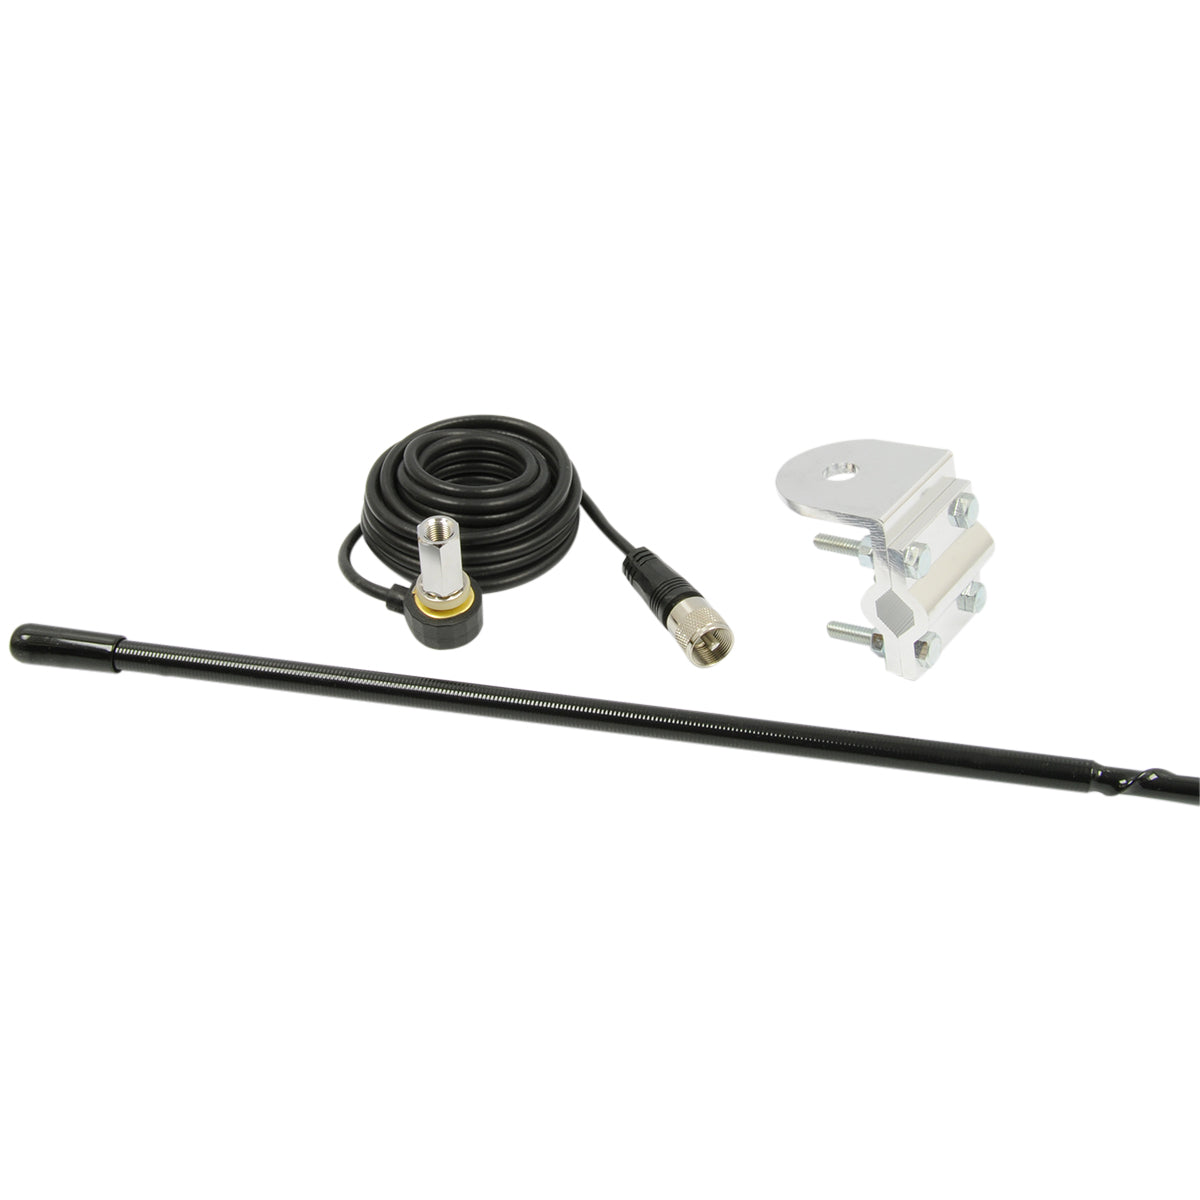 4' Platinum Series Single Mirror Mount CB Antenna Kit, 1000W Black